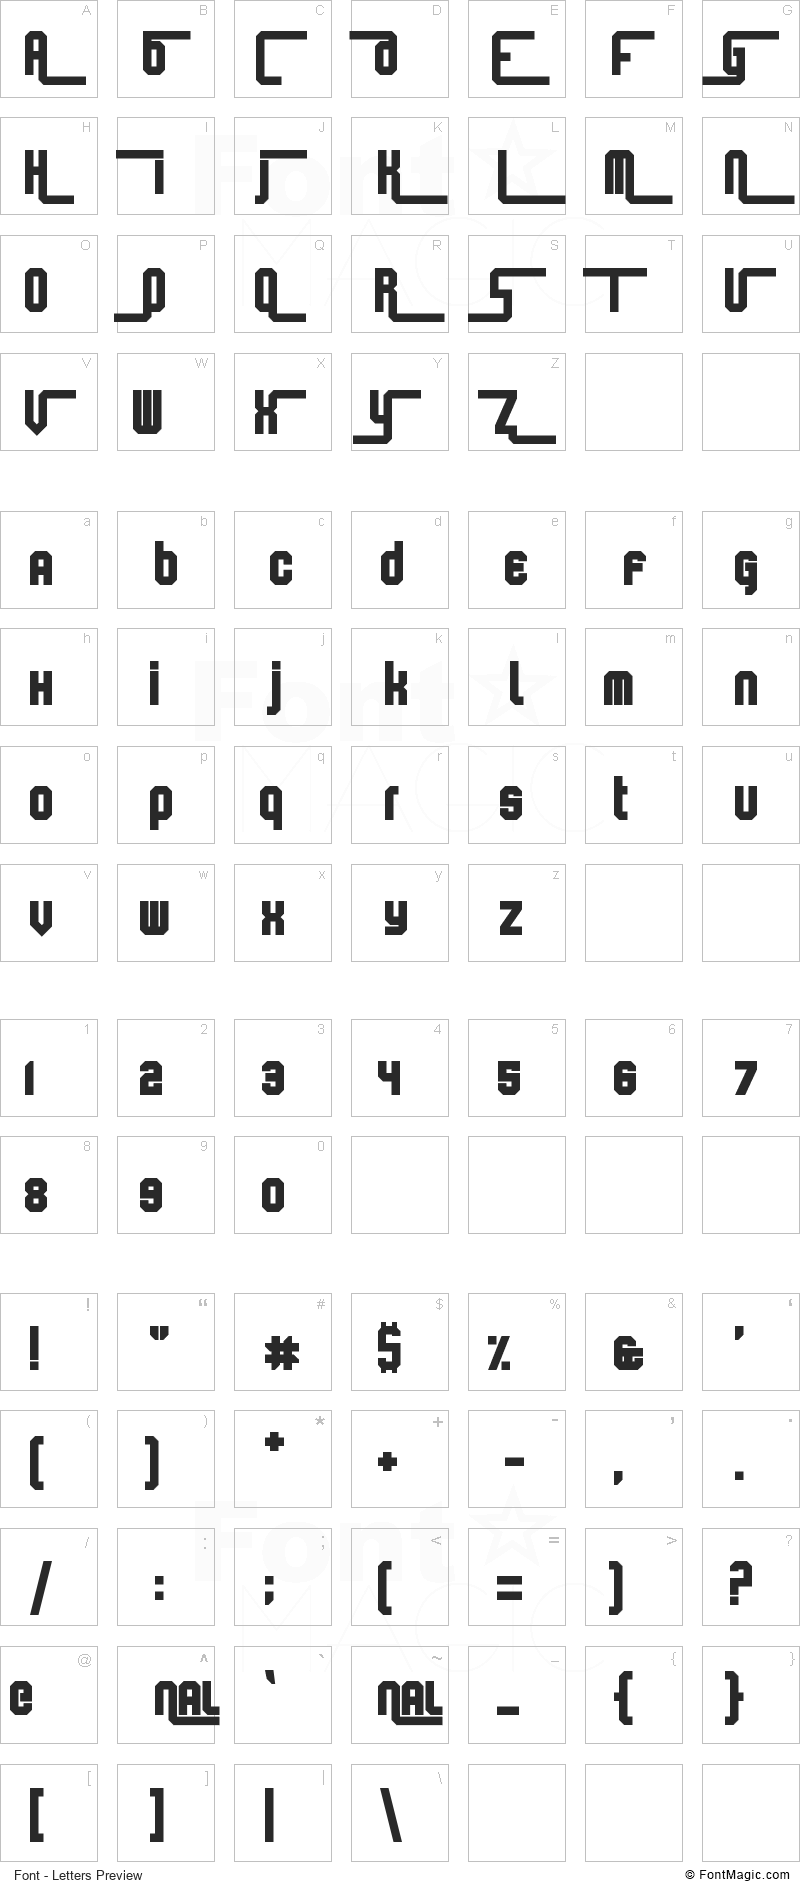 Keyboard Warrior Font - All Latters Preview Chart